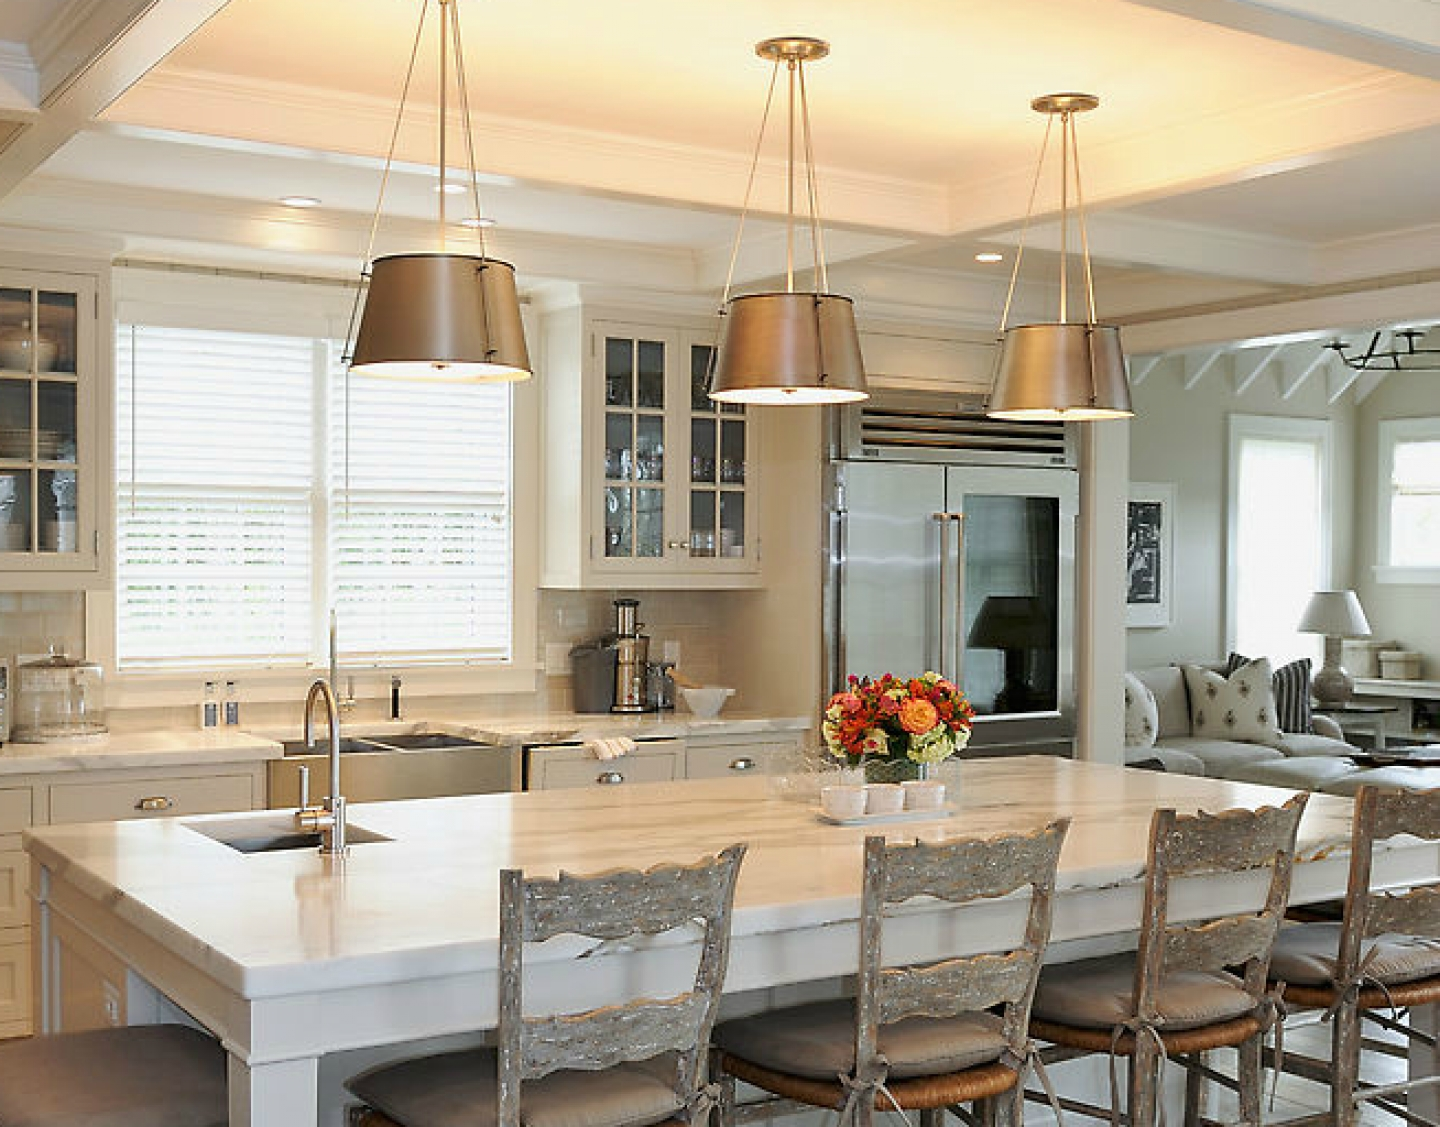 modern french country kitchen designs french country kitchen designs modern french country kitchen designs photo 1